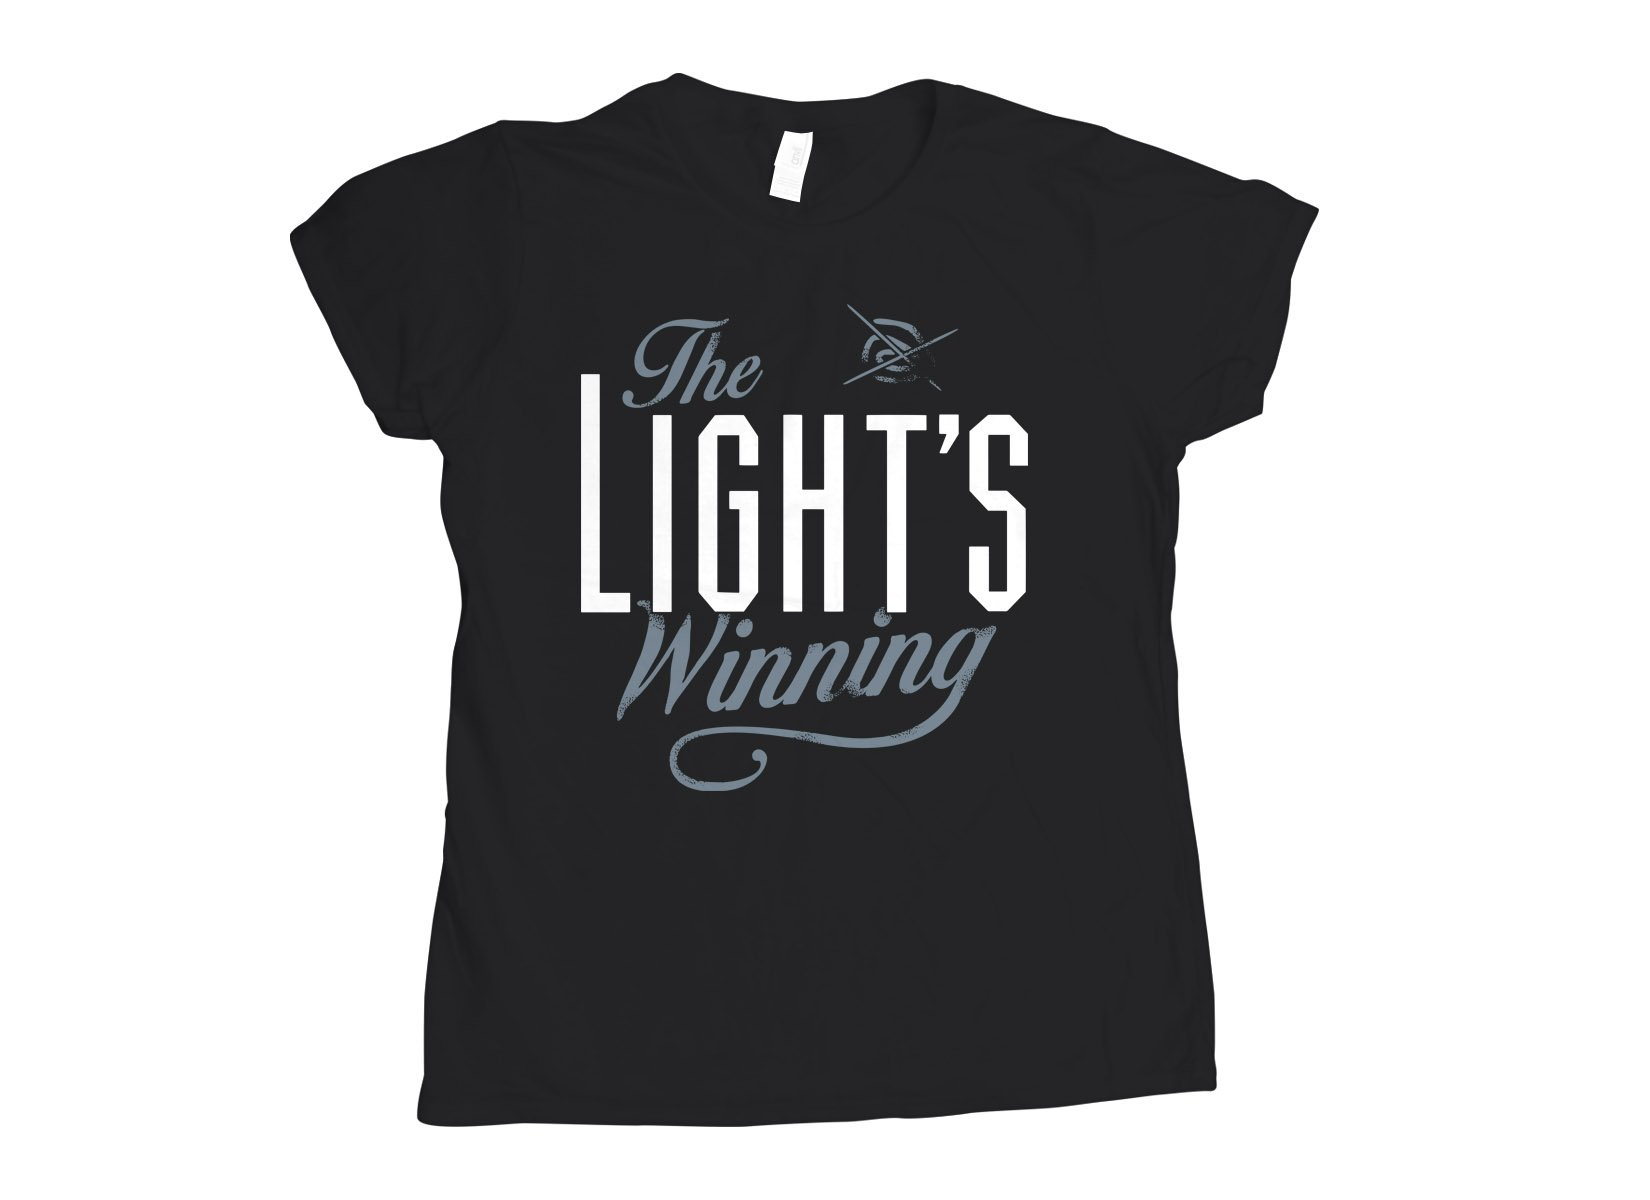 The Light's Winning on Womens T-Shirt